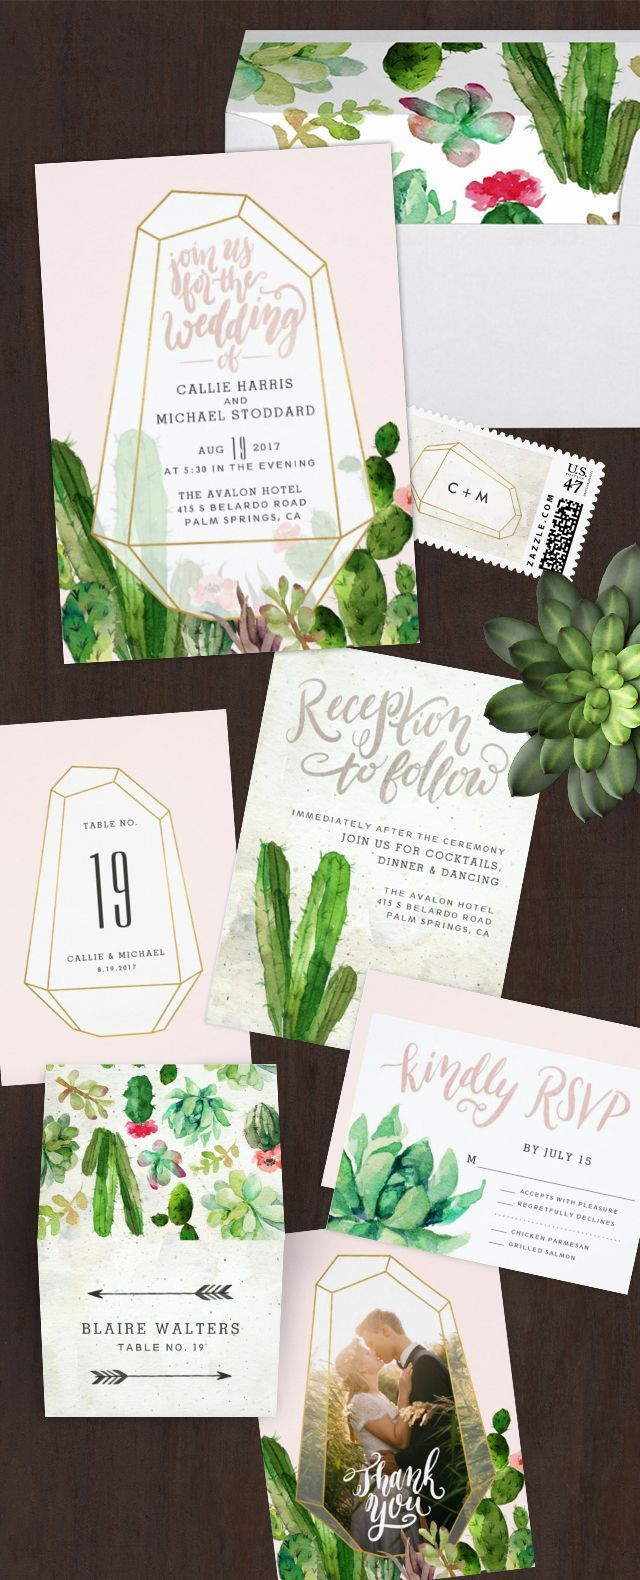 Desert Succulent Wedding Paper Suite   Perfect For A Palm Springs Or Desert  Wedding Venue!